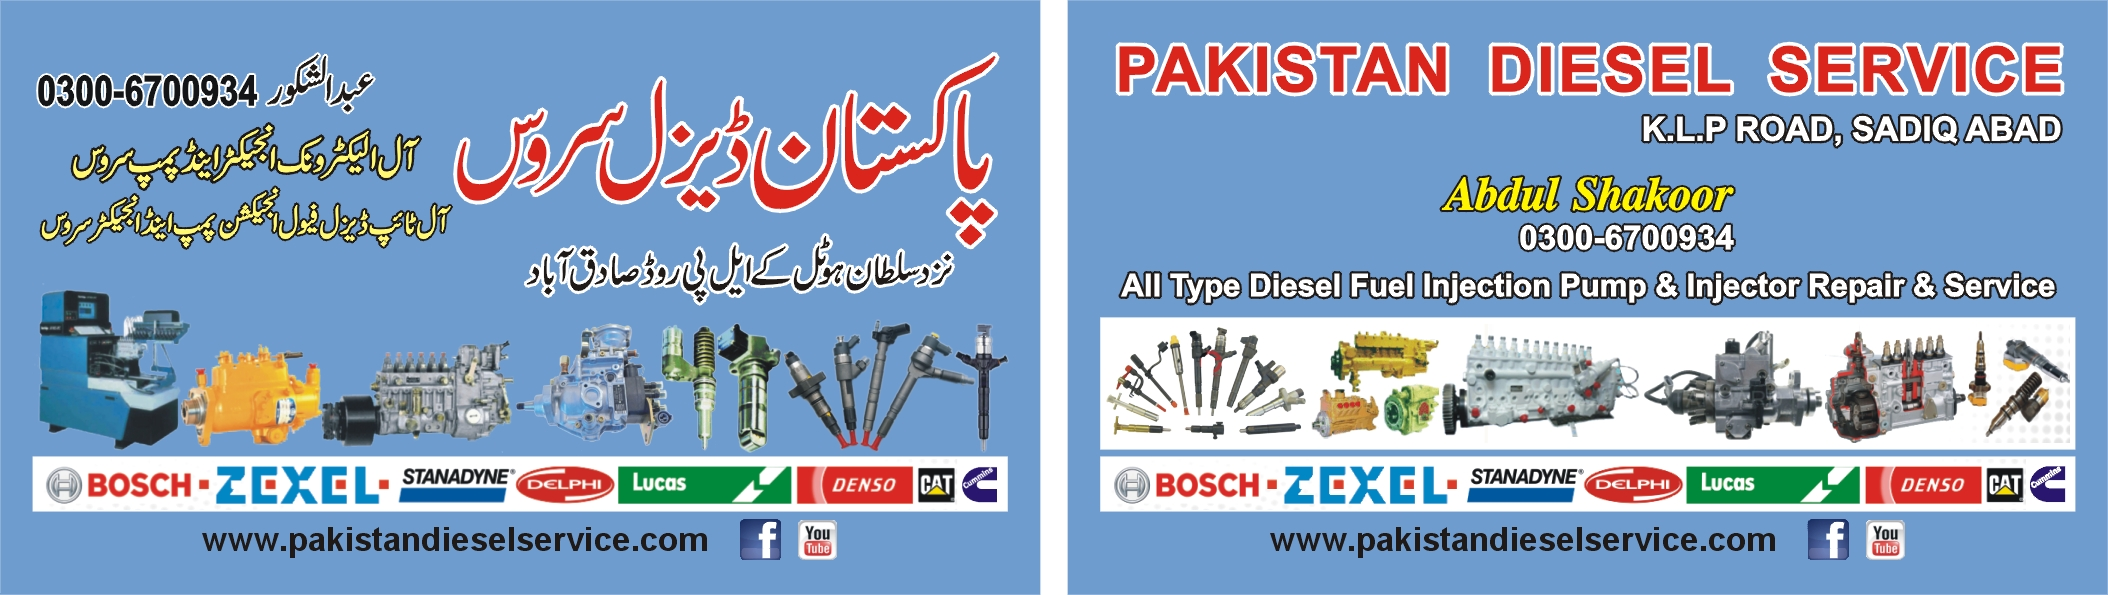 Diesel Fuel Injection Service in Sadiqabad at PakBD com Business